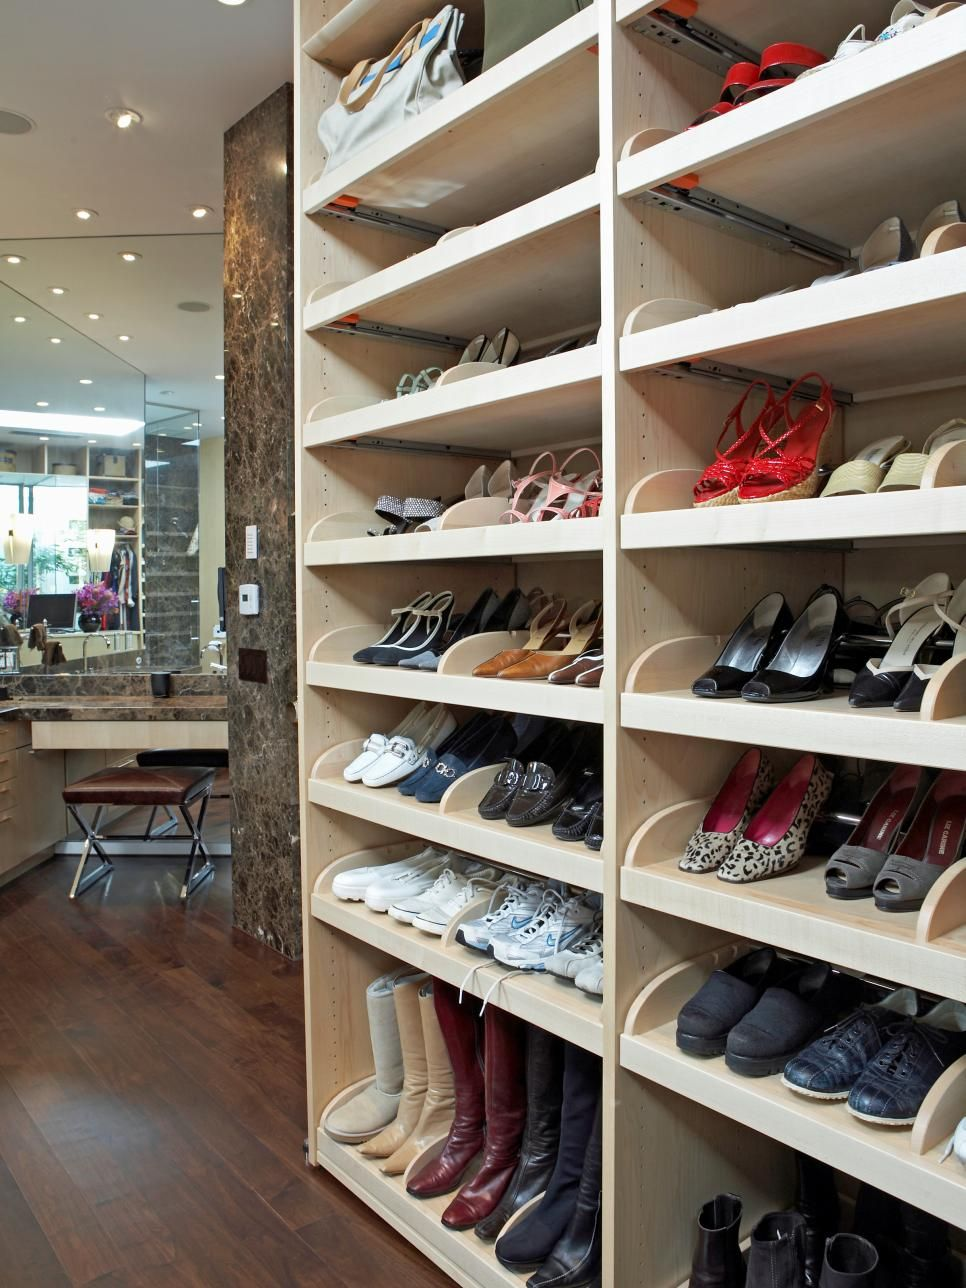 Here Shoes Are Displayed On Angled Shelves Organized By Color